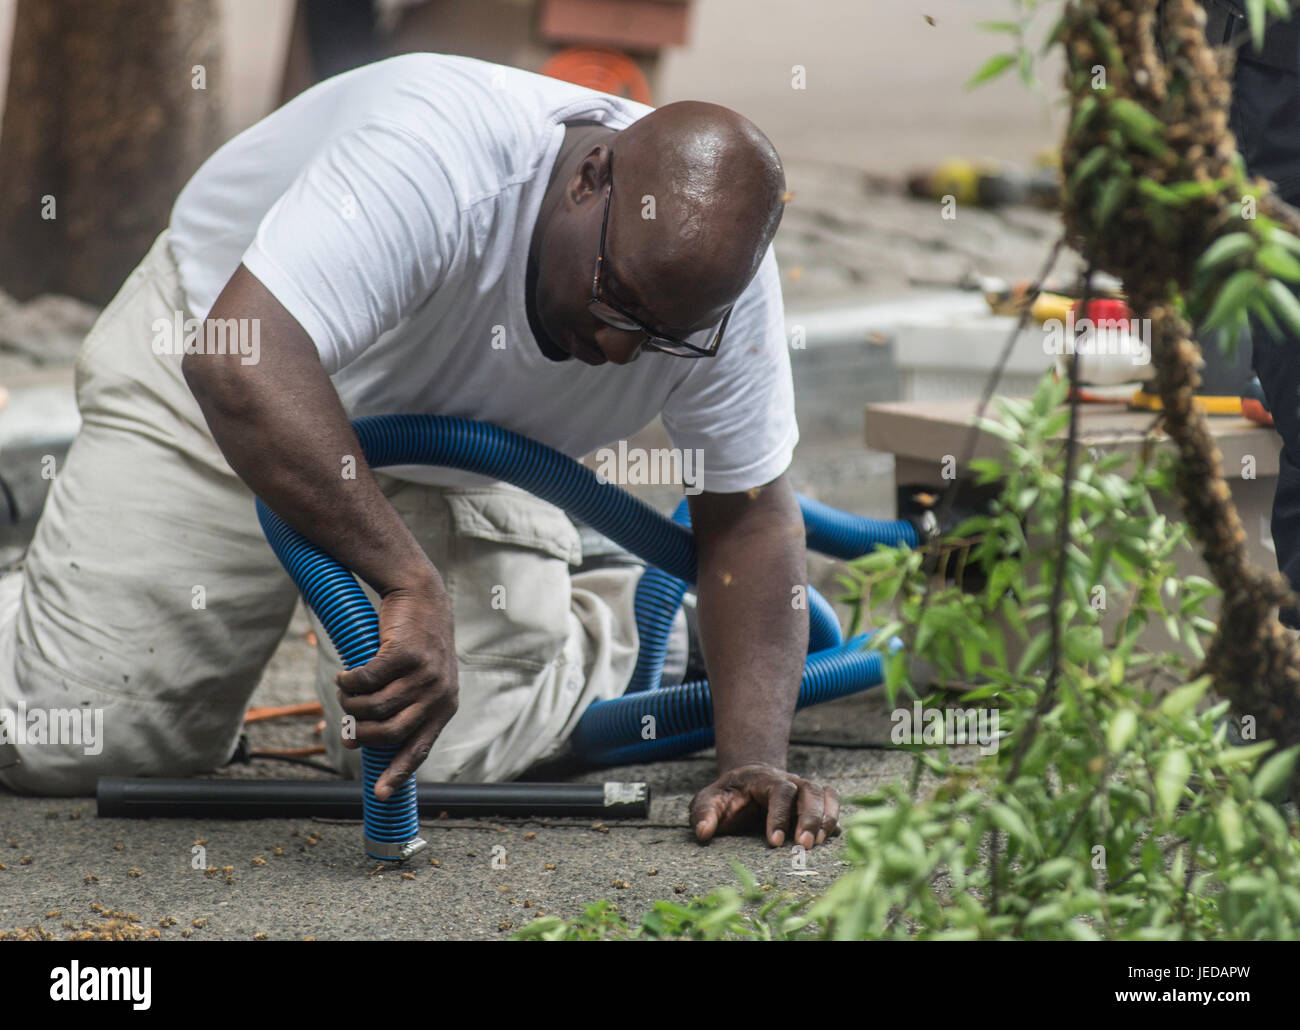 New York, NY 21 June 2017 - A Beekeeper and member of the NYPD Emergency Services Unit, vacuums up random bees after - Stock Image